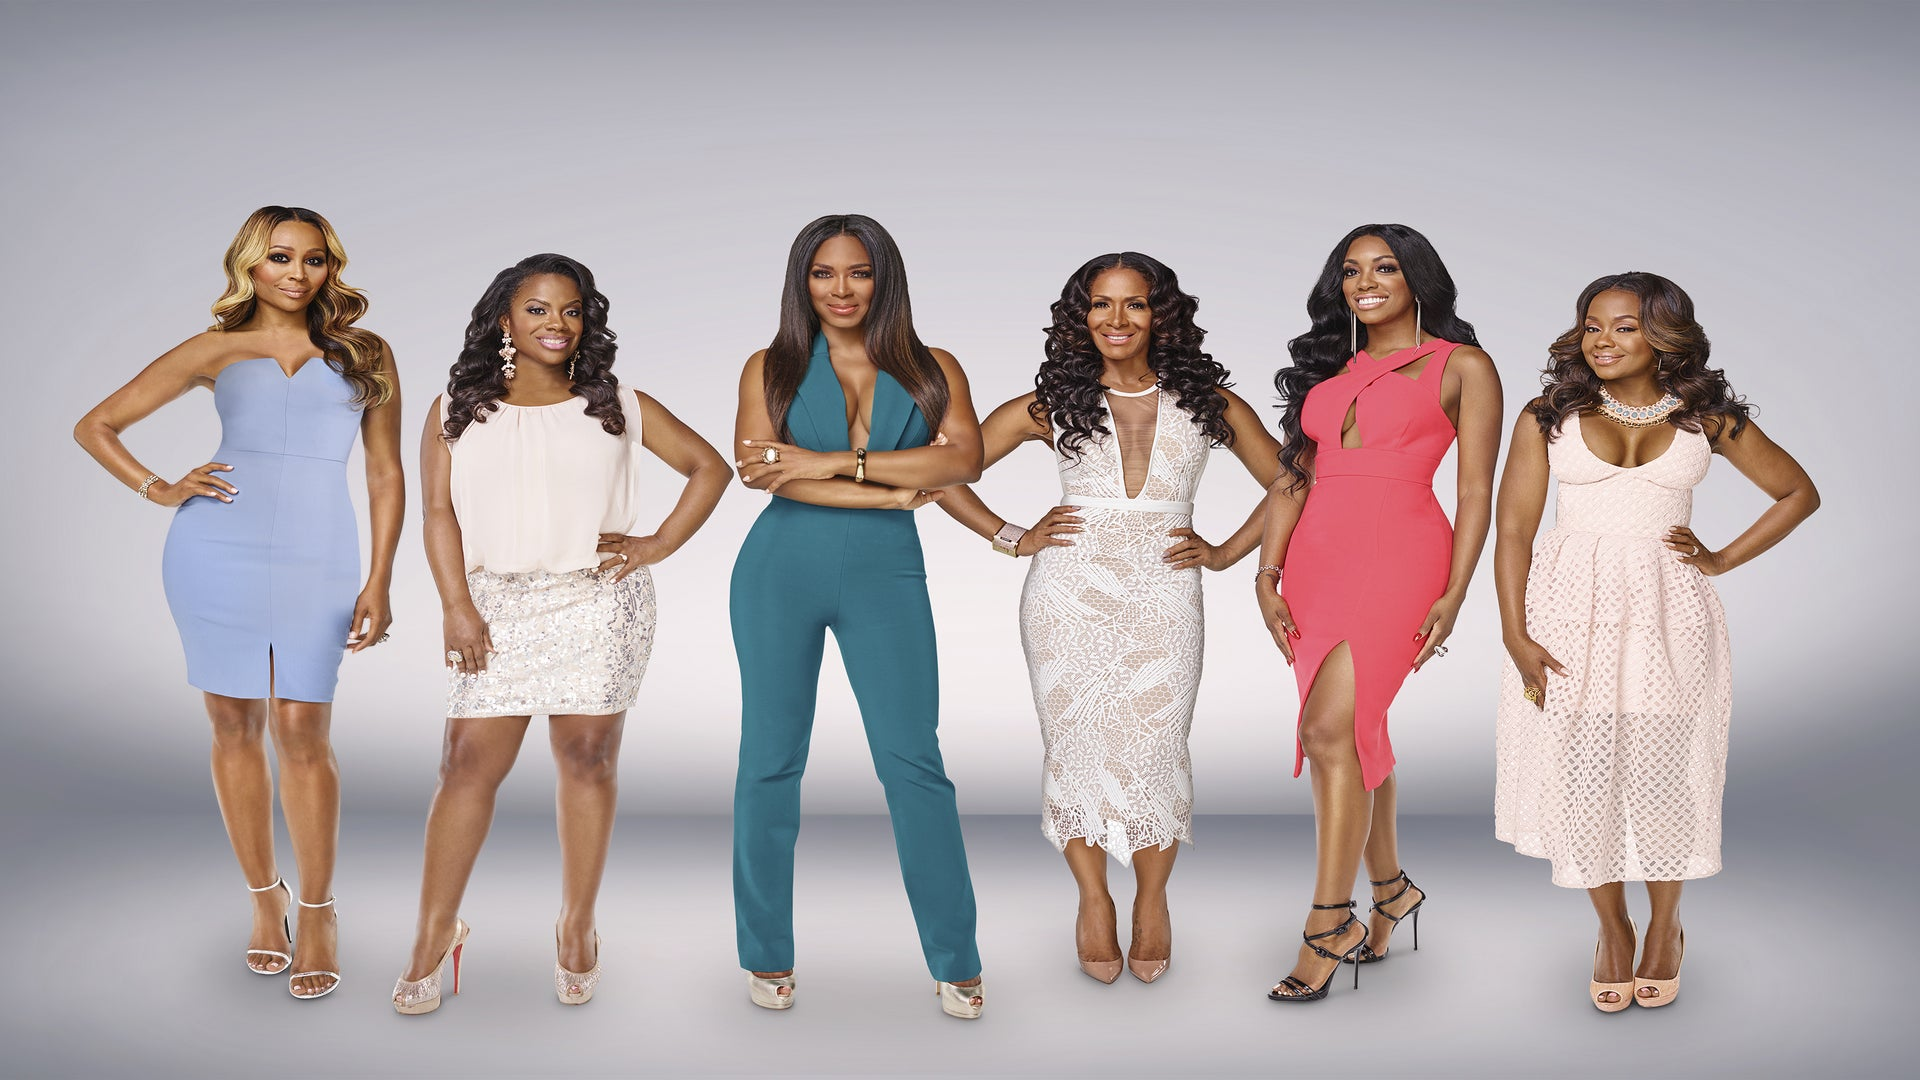 'The Real Housewives Of Atlanta' Reunion Is Going To Be Absolutely Insane